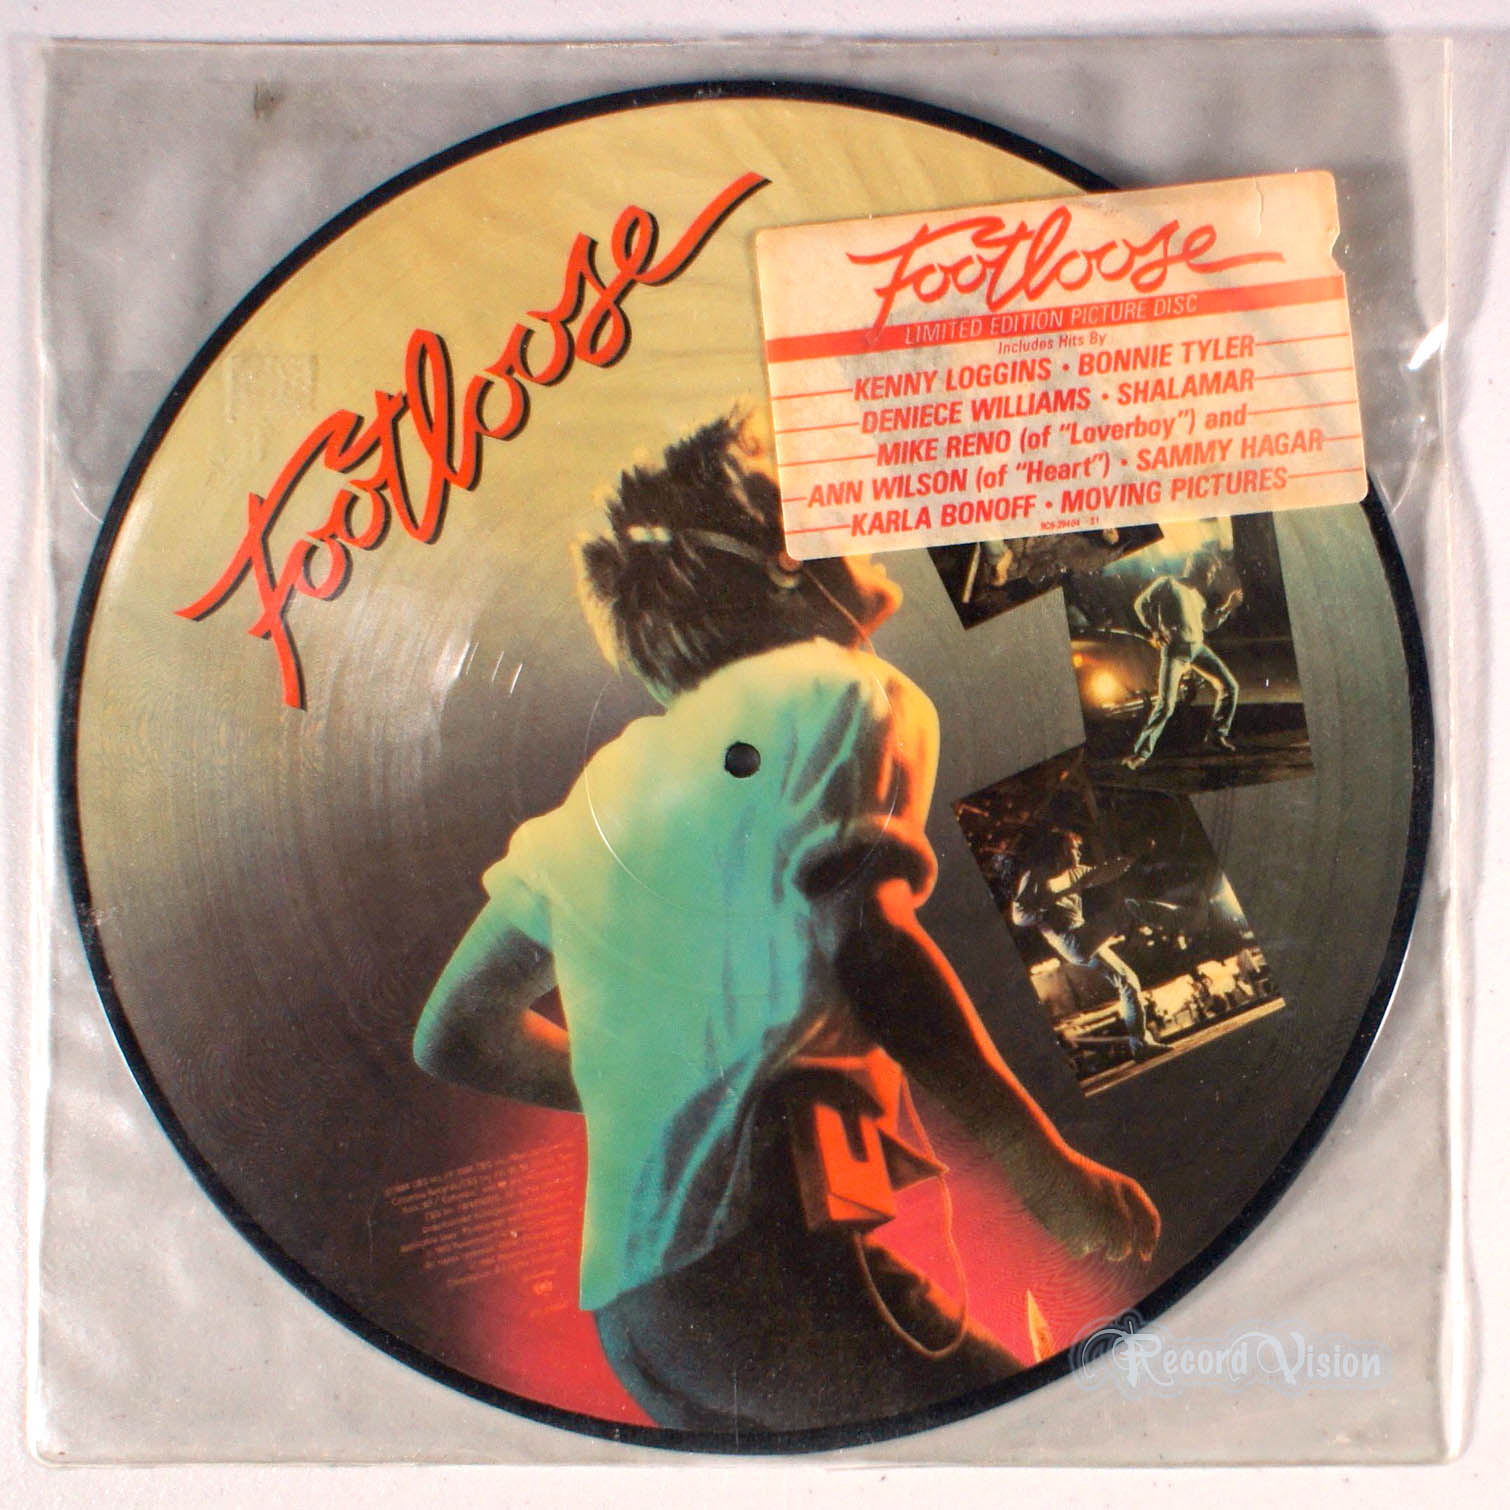 ASSORTED (BONNIE TYLER) - Footloose (Picture Disc) - 33T